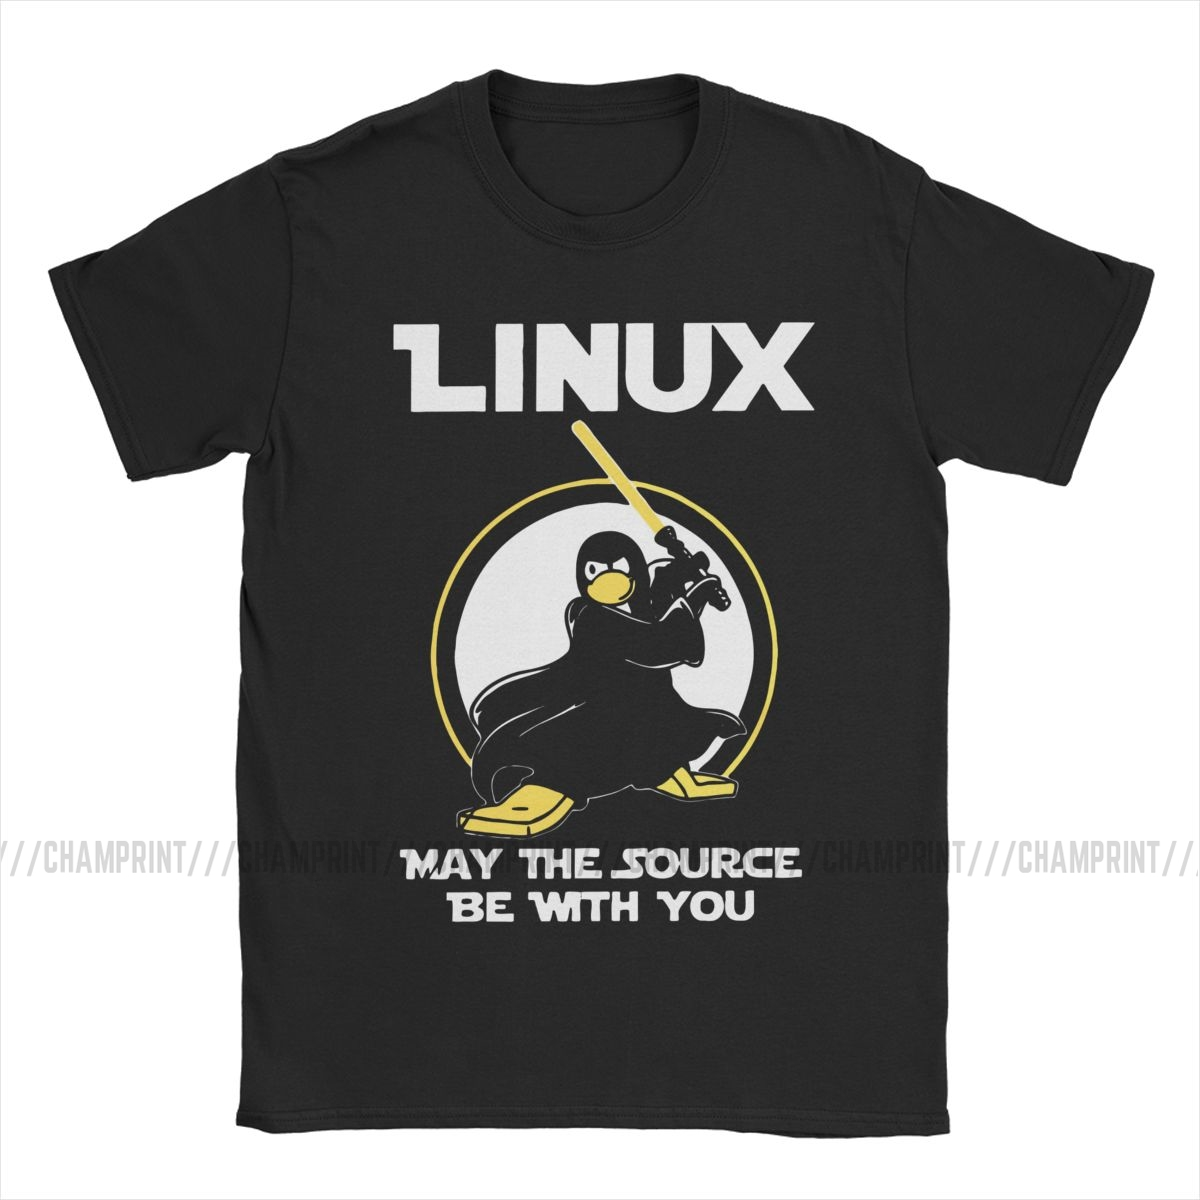 Linux May The Source Be With You T-Shirt Men Penguin Programmer Developer Programming Coding Nerd Vintage Tee Crew Neck T Shirts